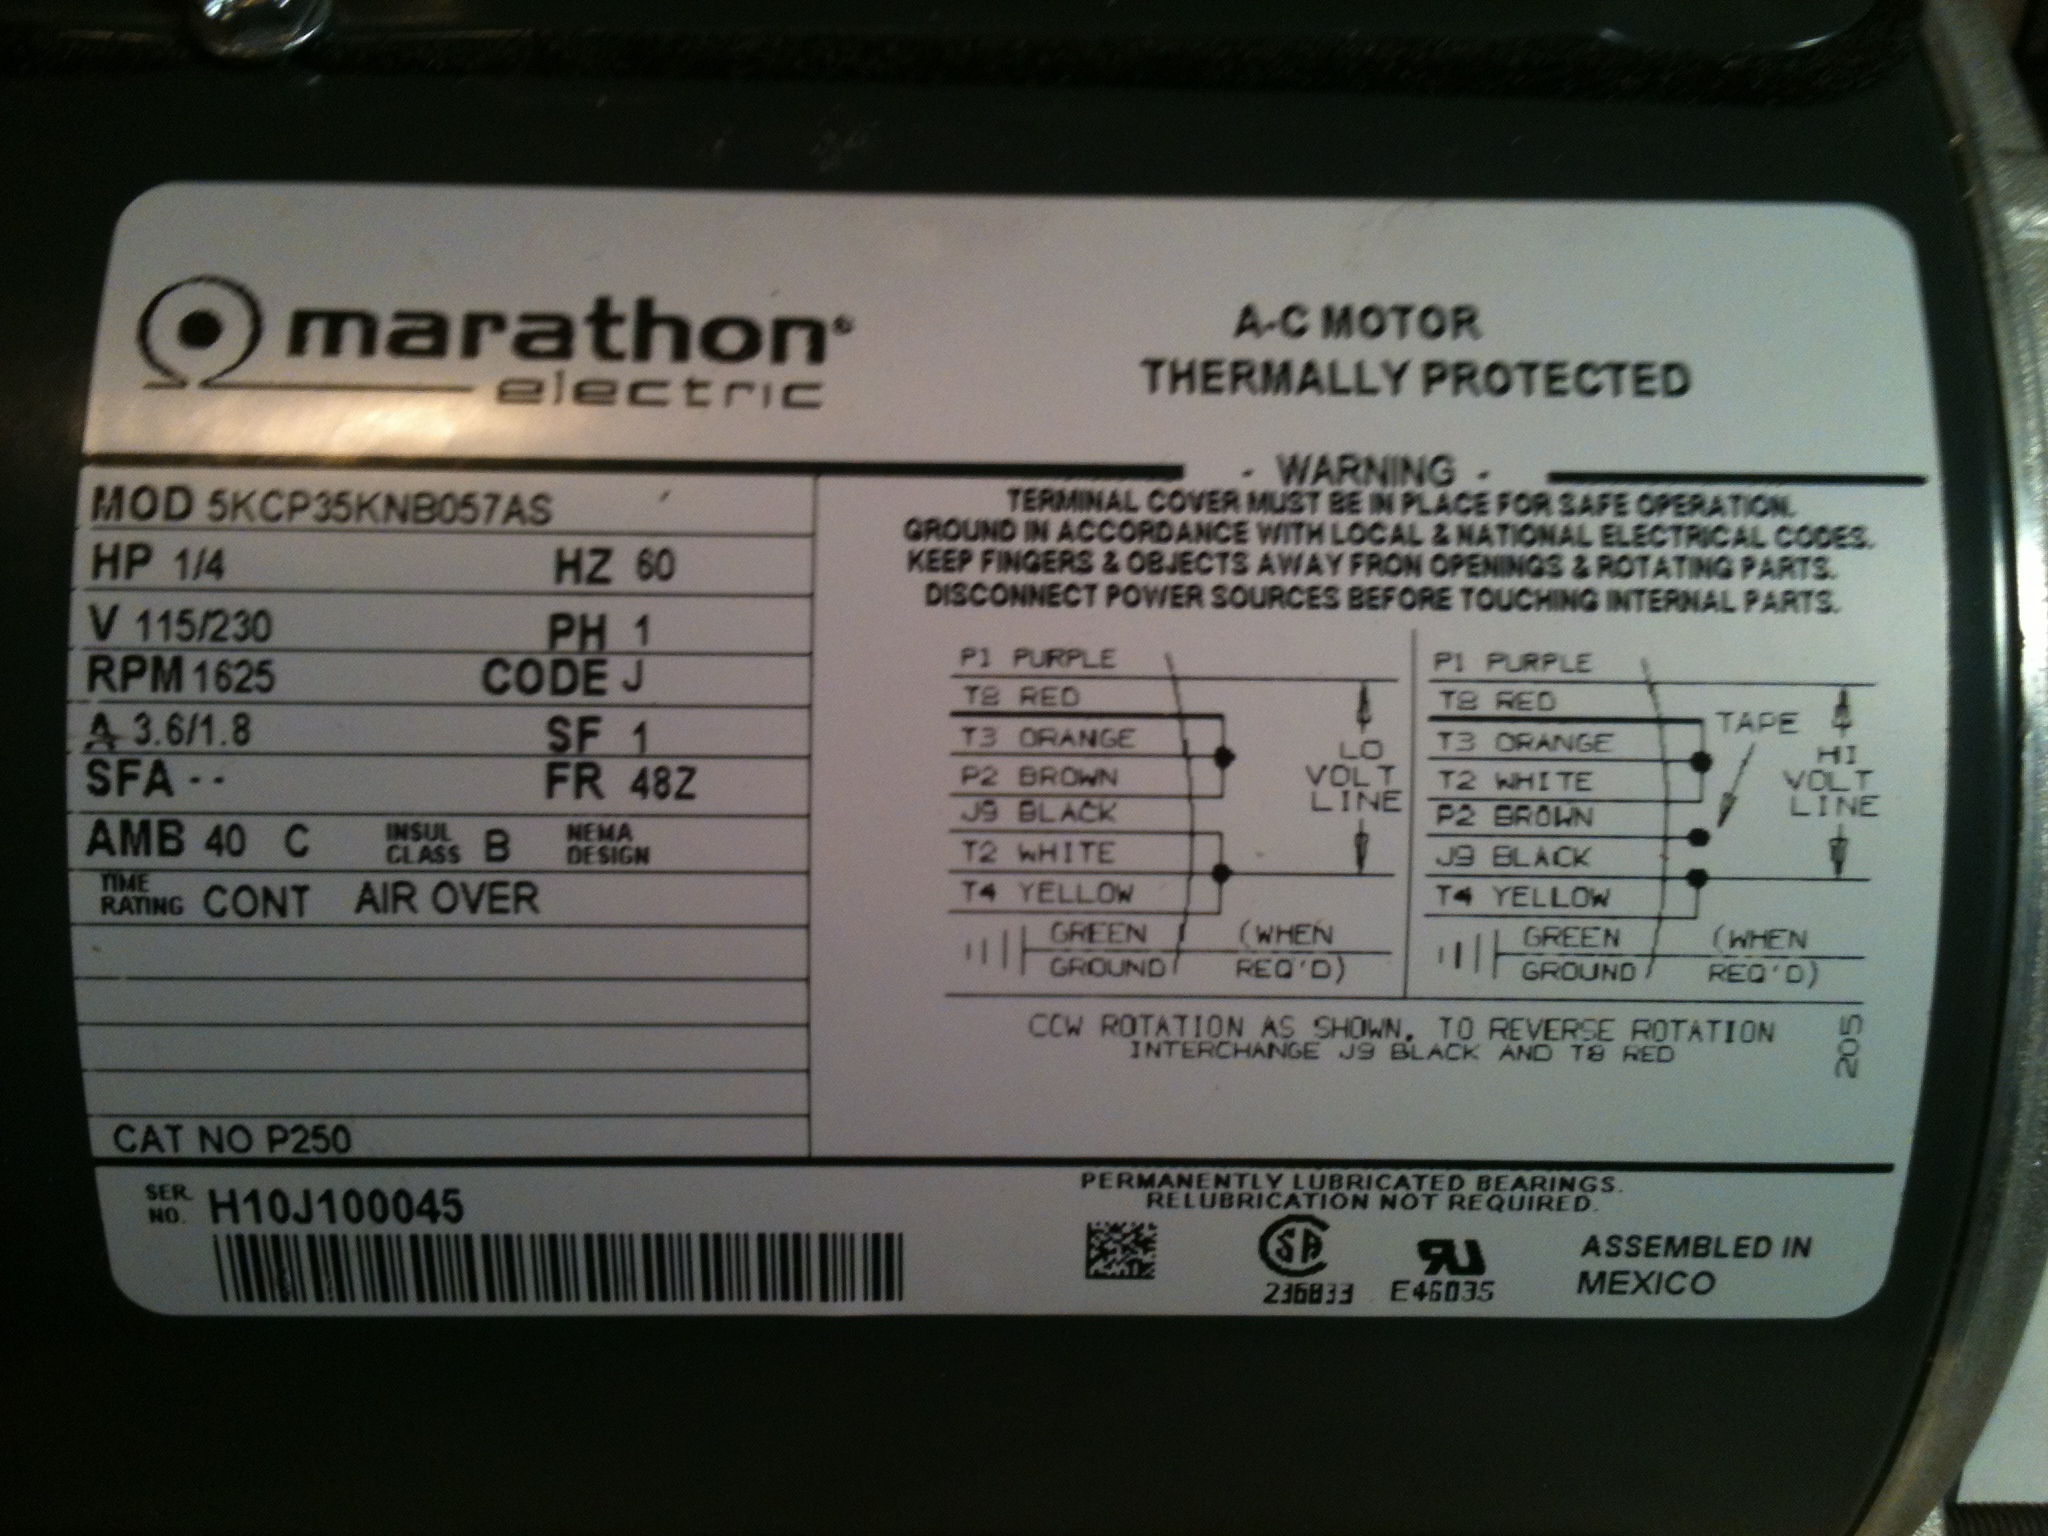 need help with marathon electric ac motor wiring Electric Reversible Motor Switch Wiring motor label